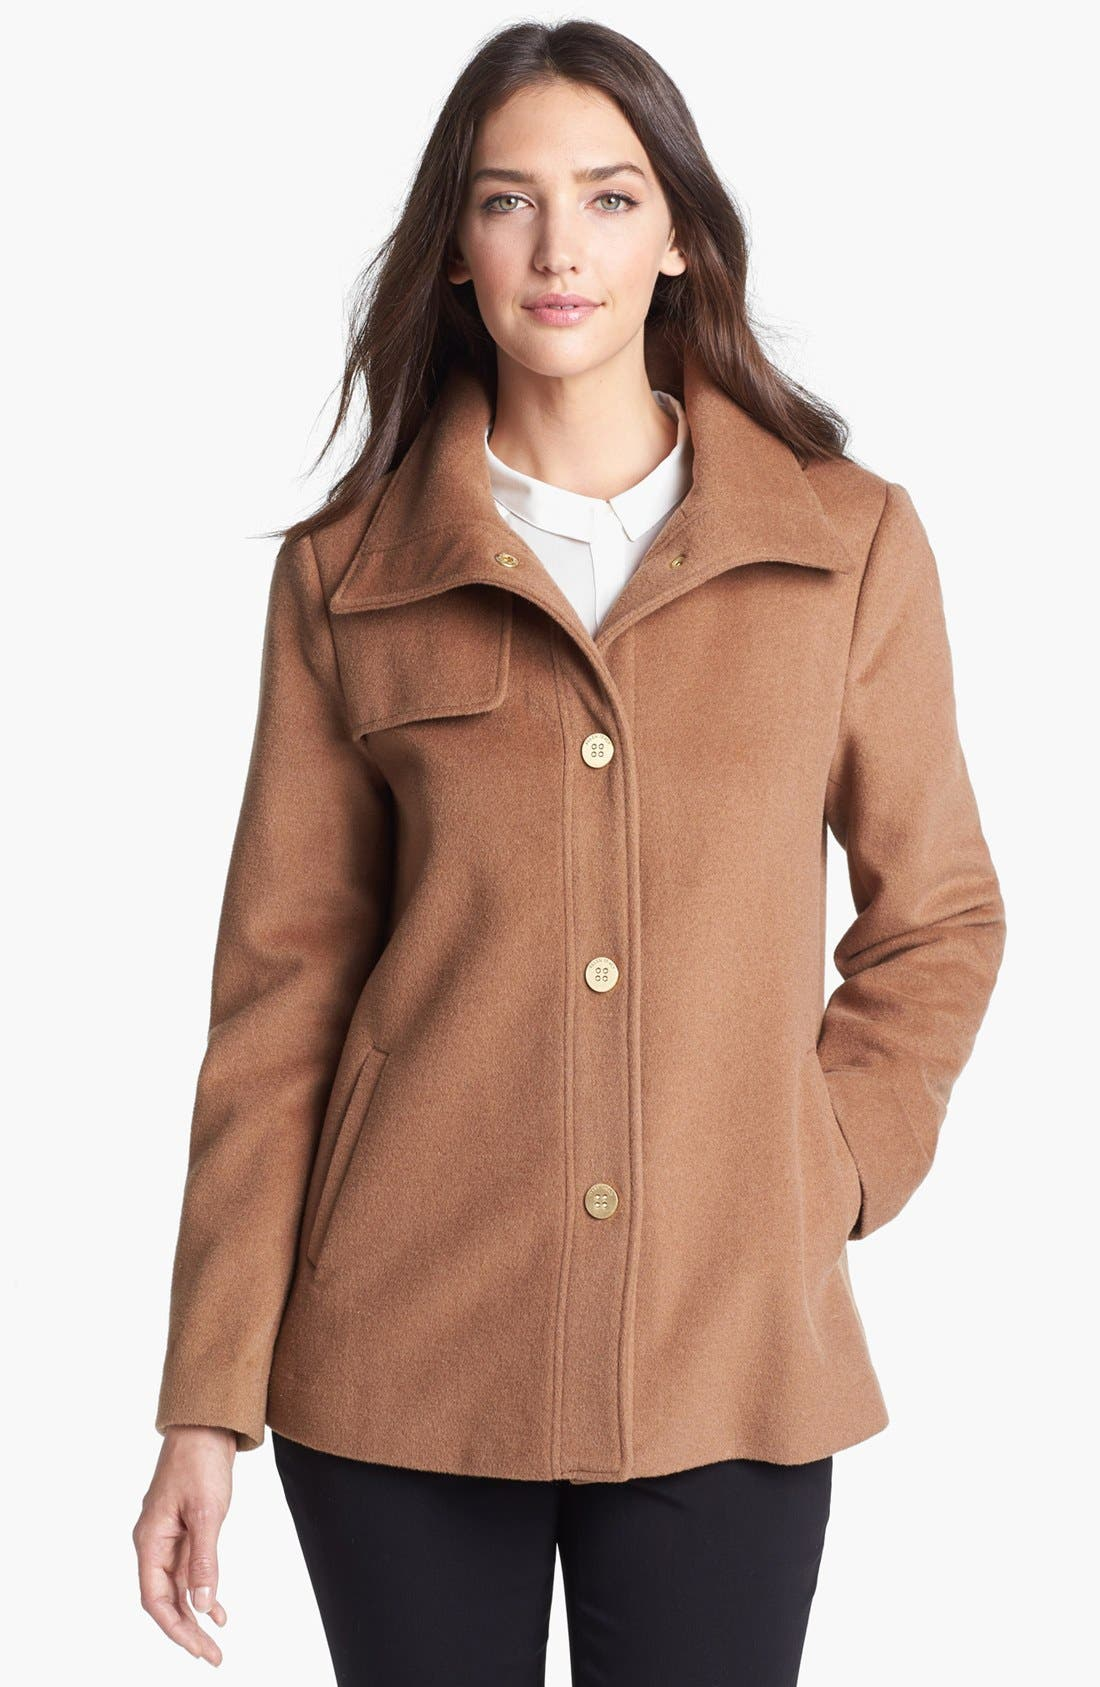 Alternate Image 1 Selected - Ellen Tracy Snap Front Wool Blend A-Line Coat (Petite) (Online Only)